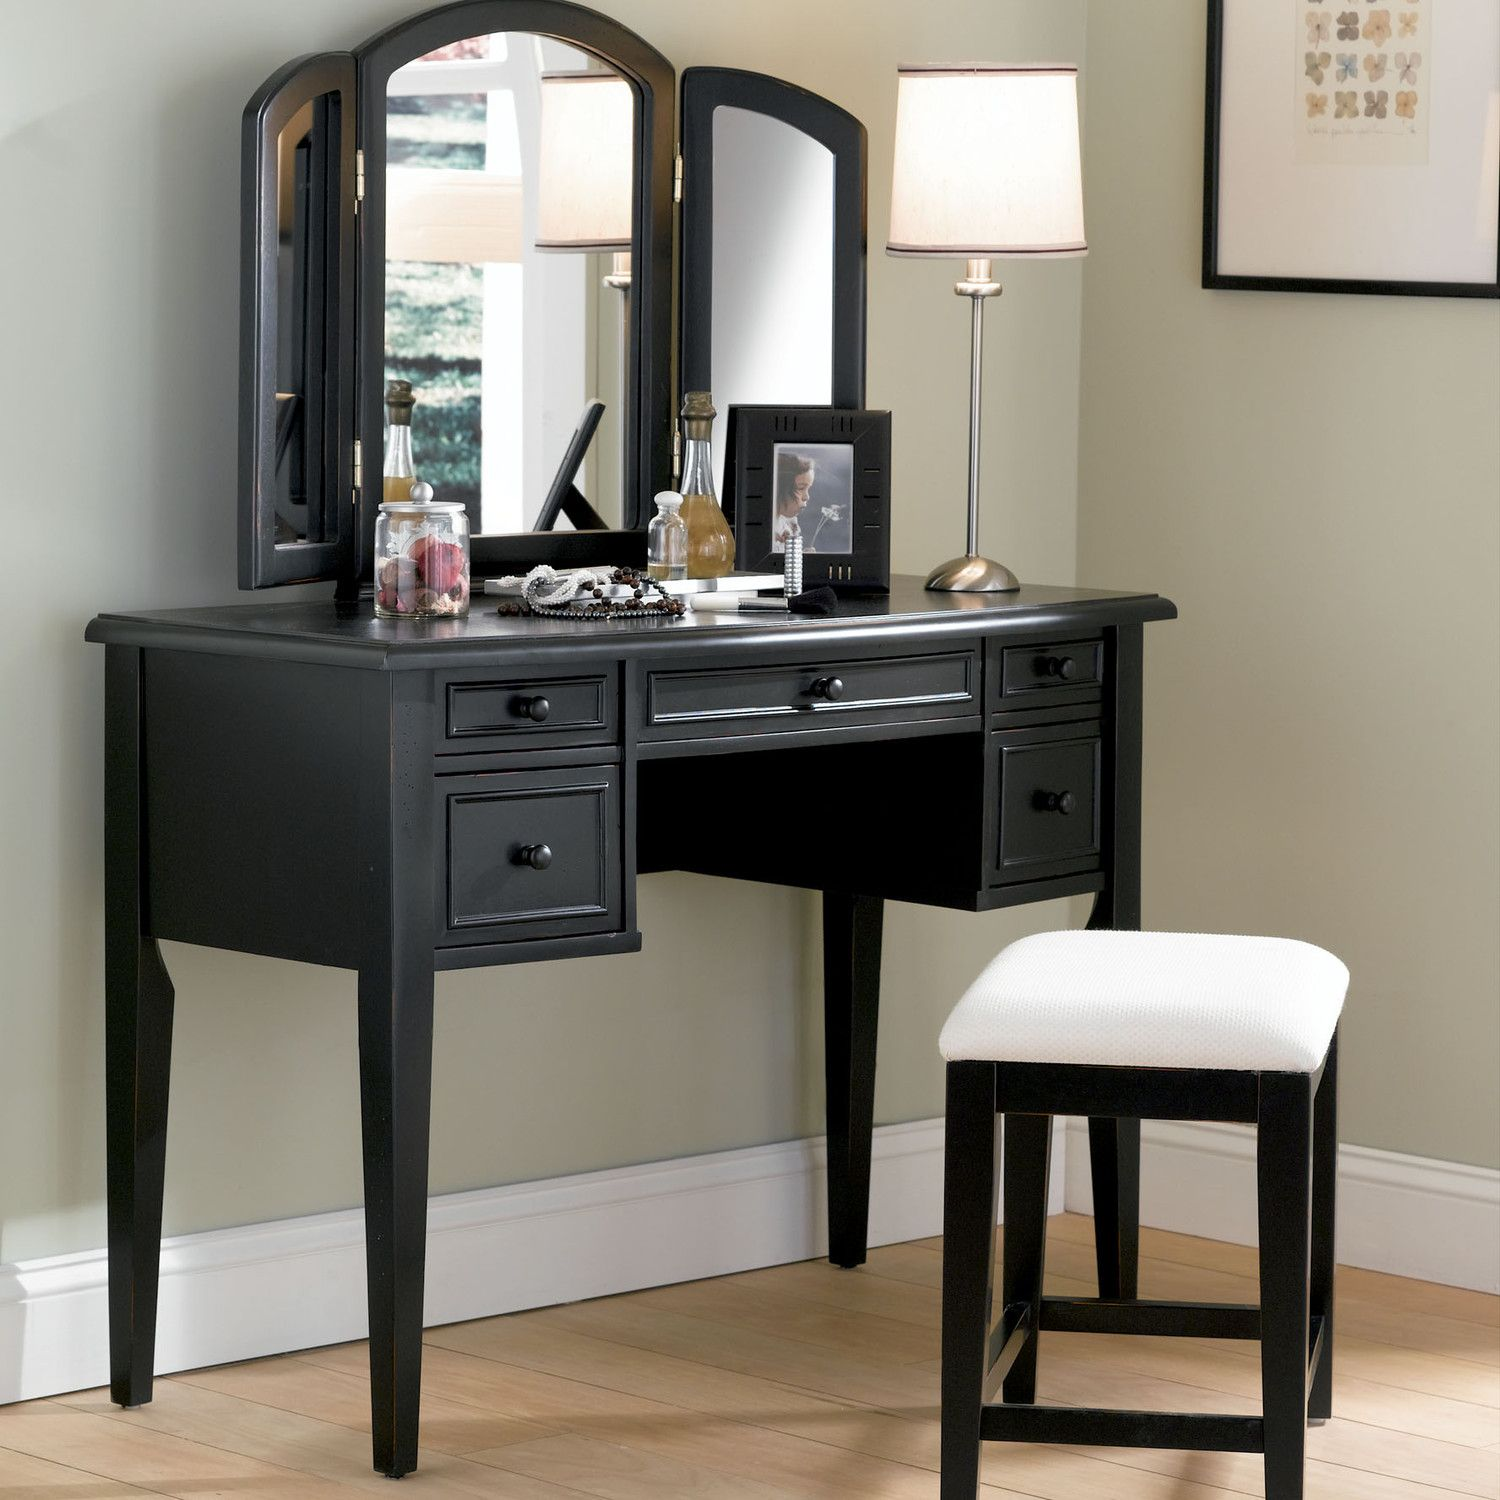 Powell Antique Black Vanity Set with Mirror - Features: Product Type: -Vanity Set. Style: -Traditional. Finish